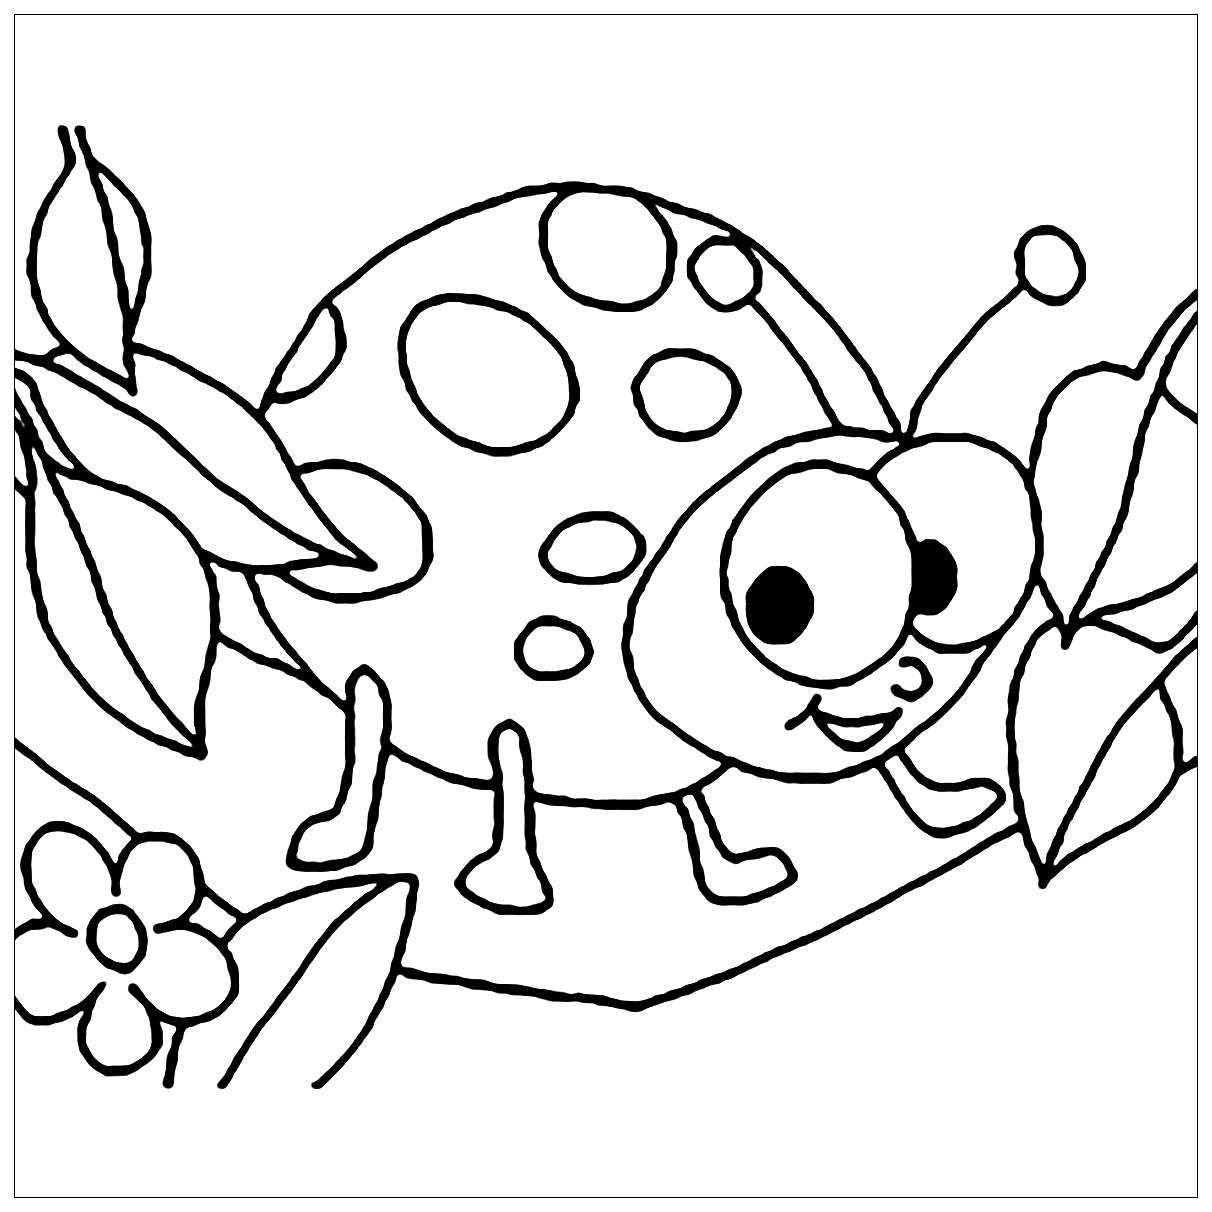 coloring pictures of insects insects for kids insects kids coloring pages pictures of insects coloring